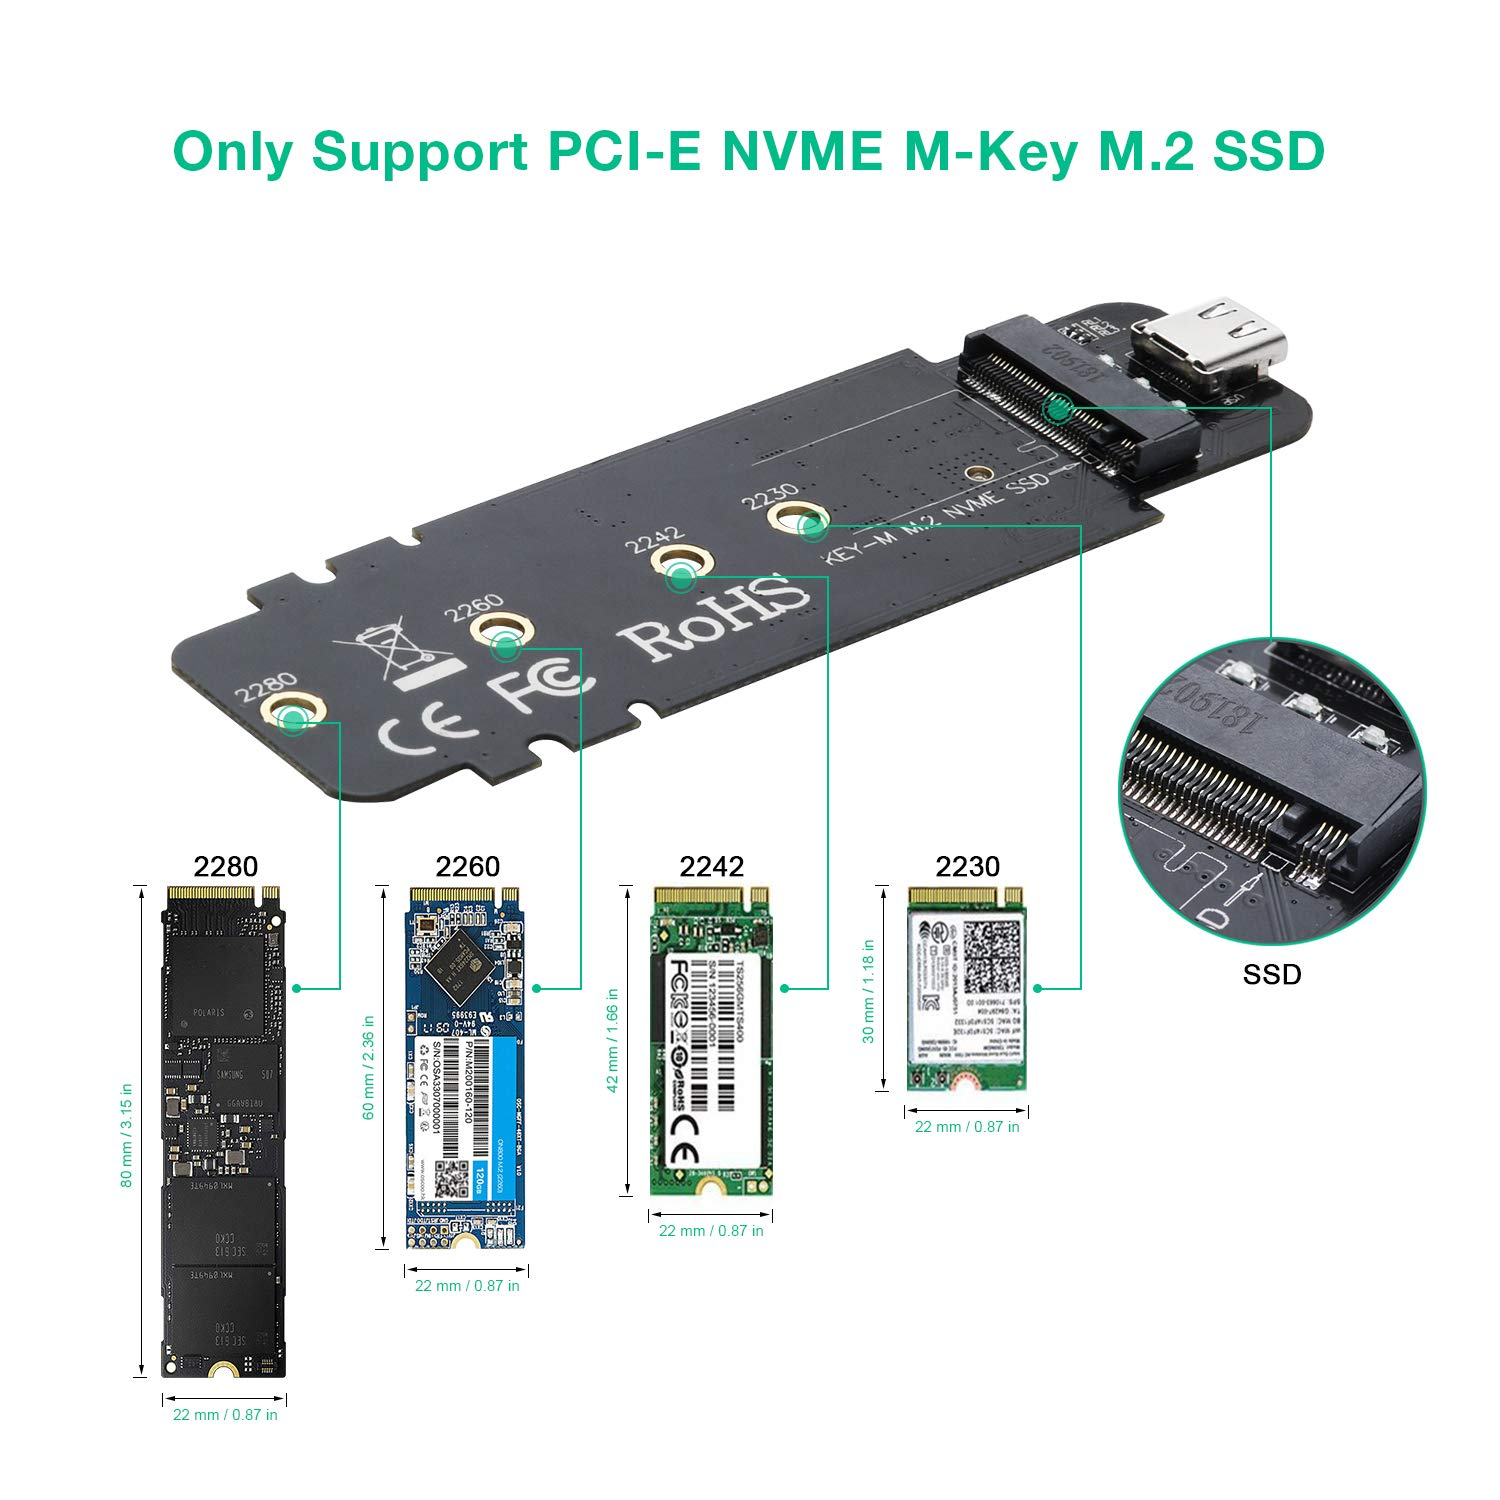 USB 3.1 Type-C to M.2 NVMe SSD Adapter,M-Key PCI-E NVMe SSD Based to USB 10GBPS External M.2 PCI-E NVMe Hard Drive Reader Adapter Support Drive Type 2230 2242 2260 2280 by CHOETECH (Image #4)